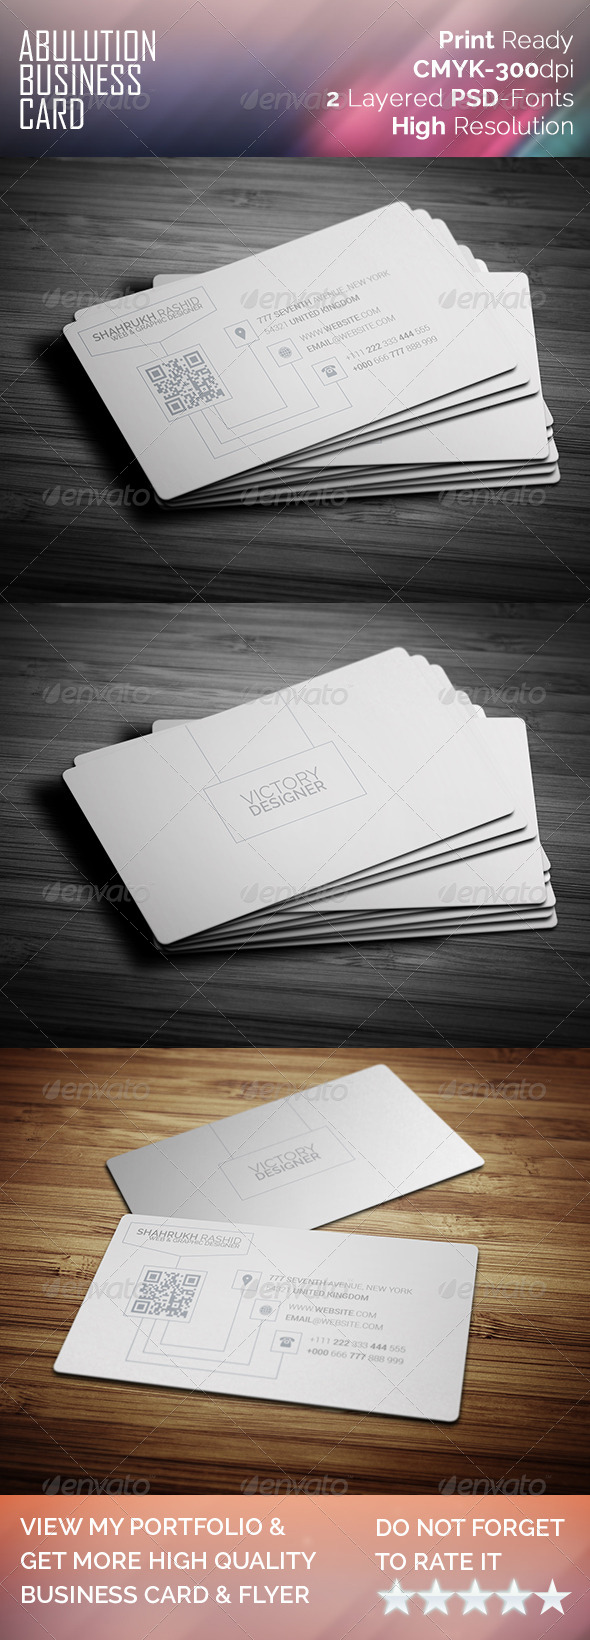 Abulution Business Card - Corporate Business Cards